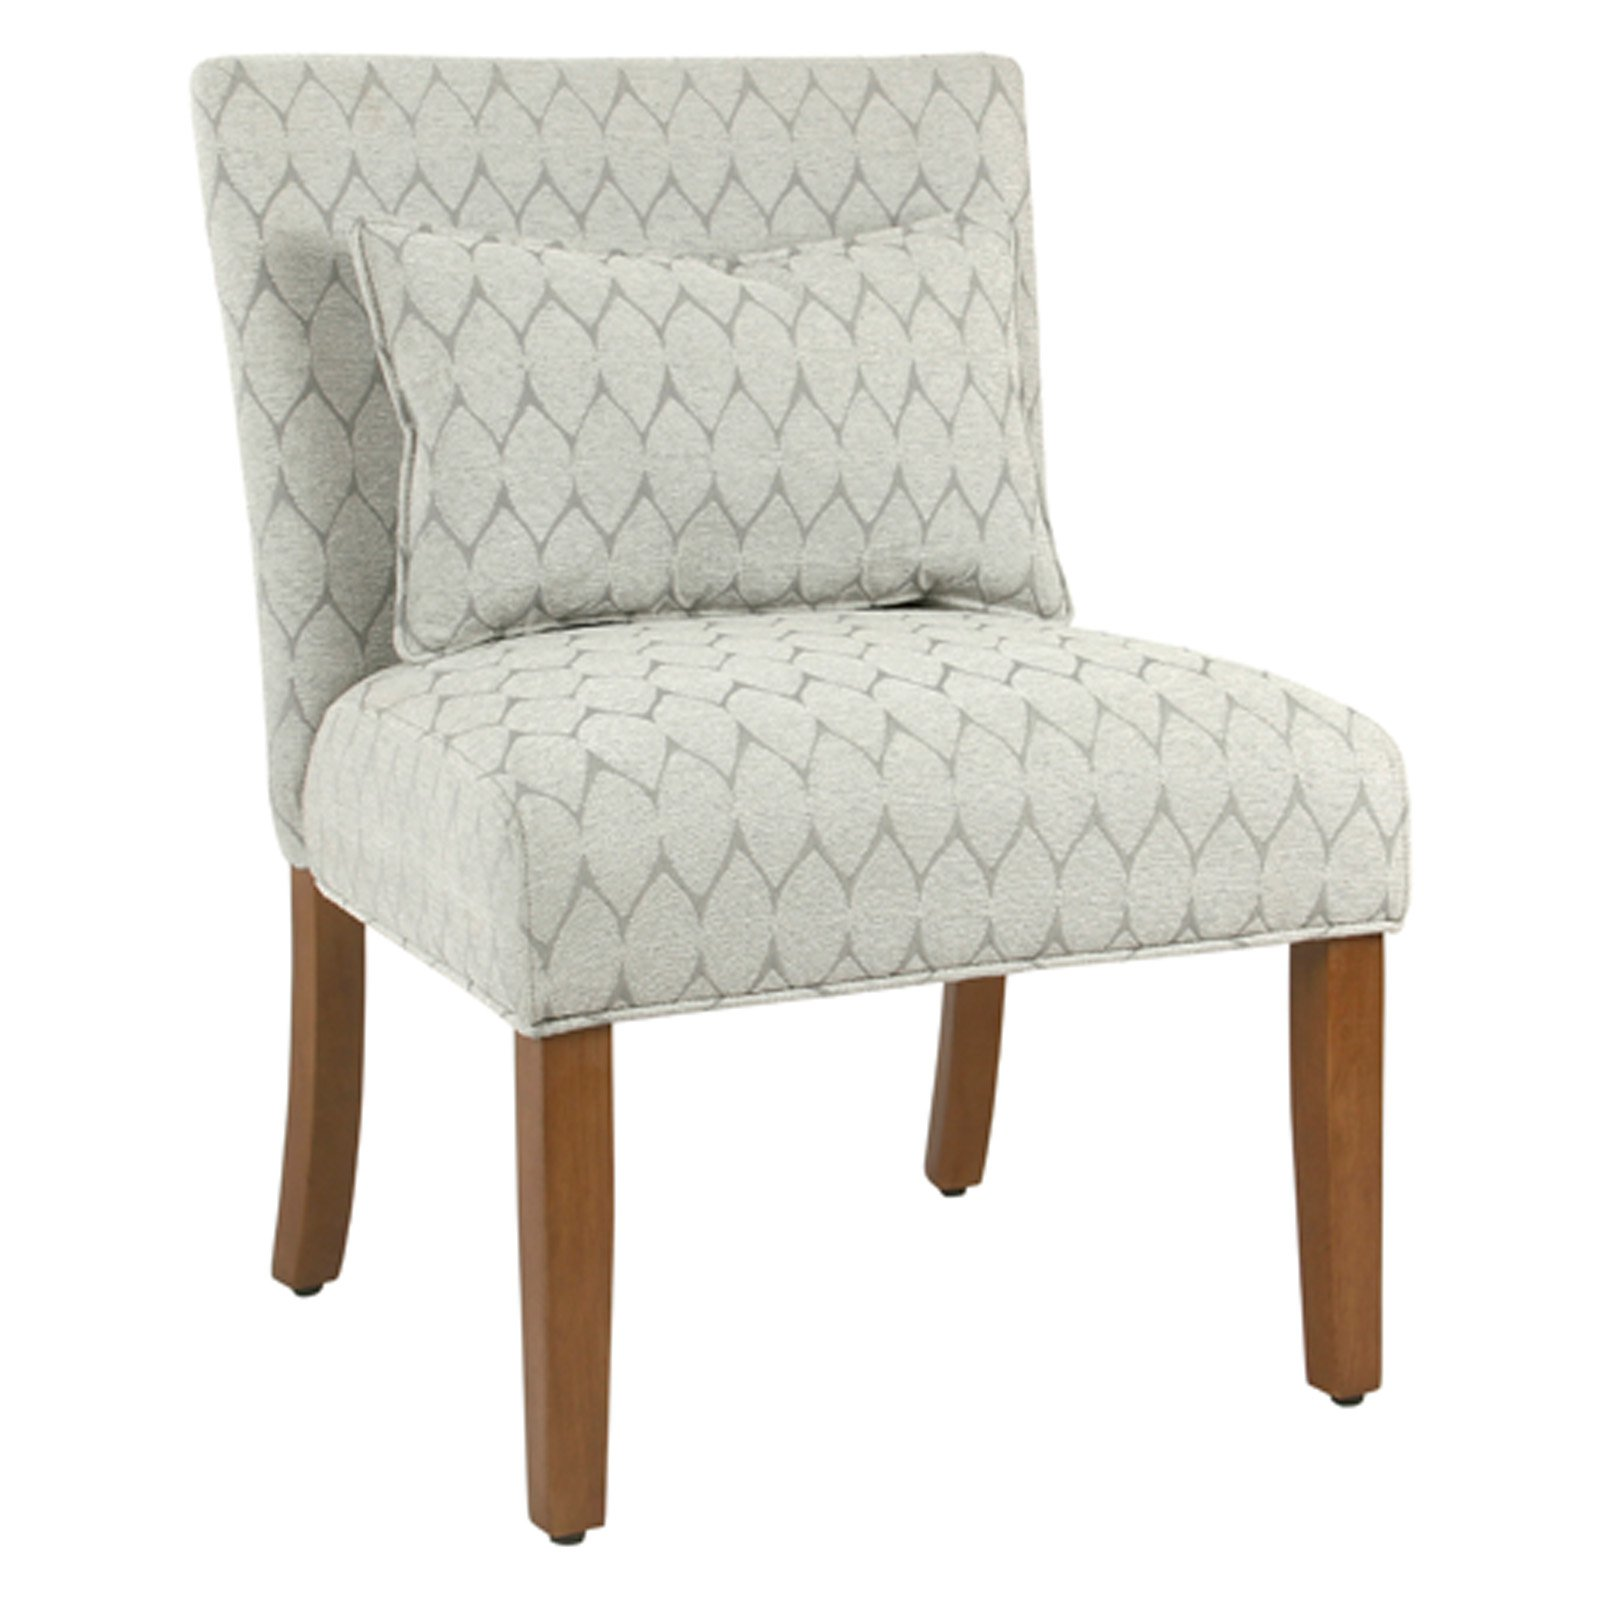 Fabric Upholstered Wooden Accent Chair With Printed Medallion Pattern,  Brown And Gray